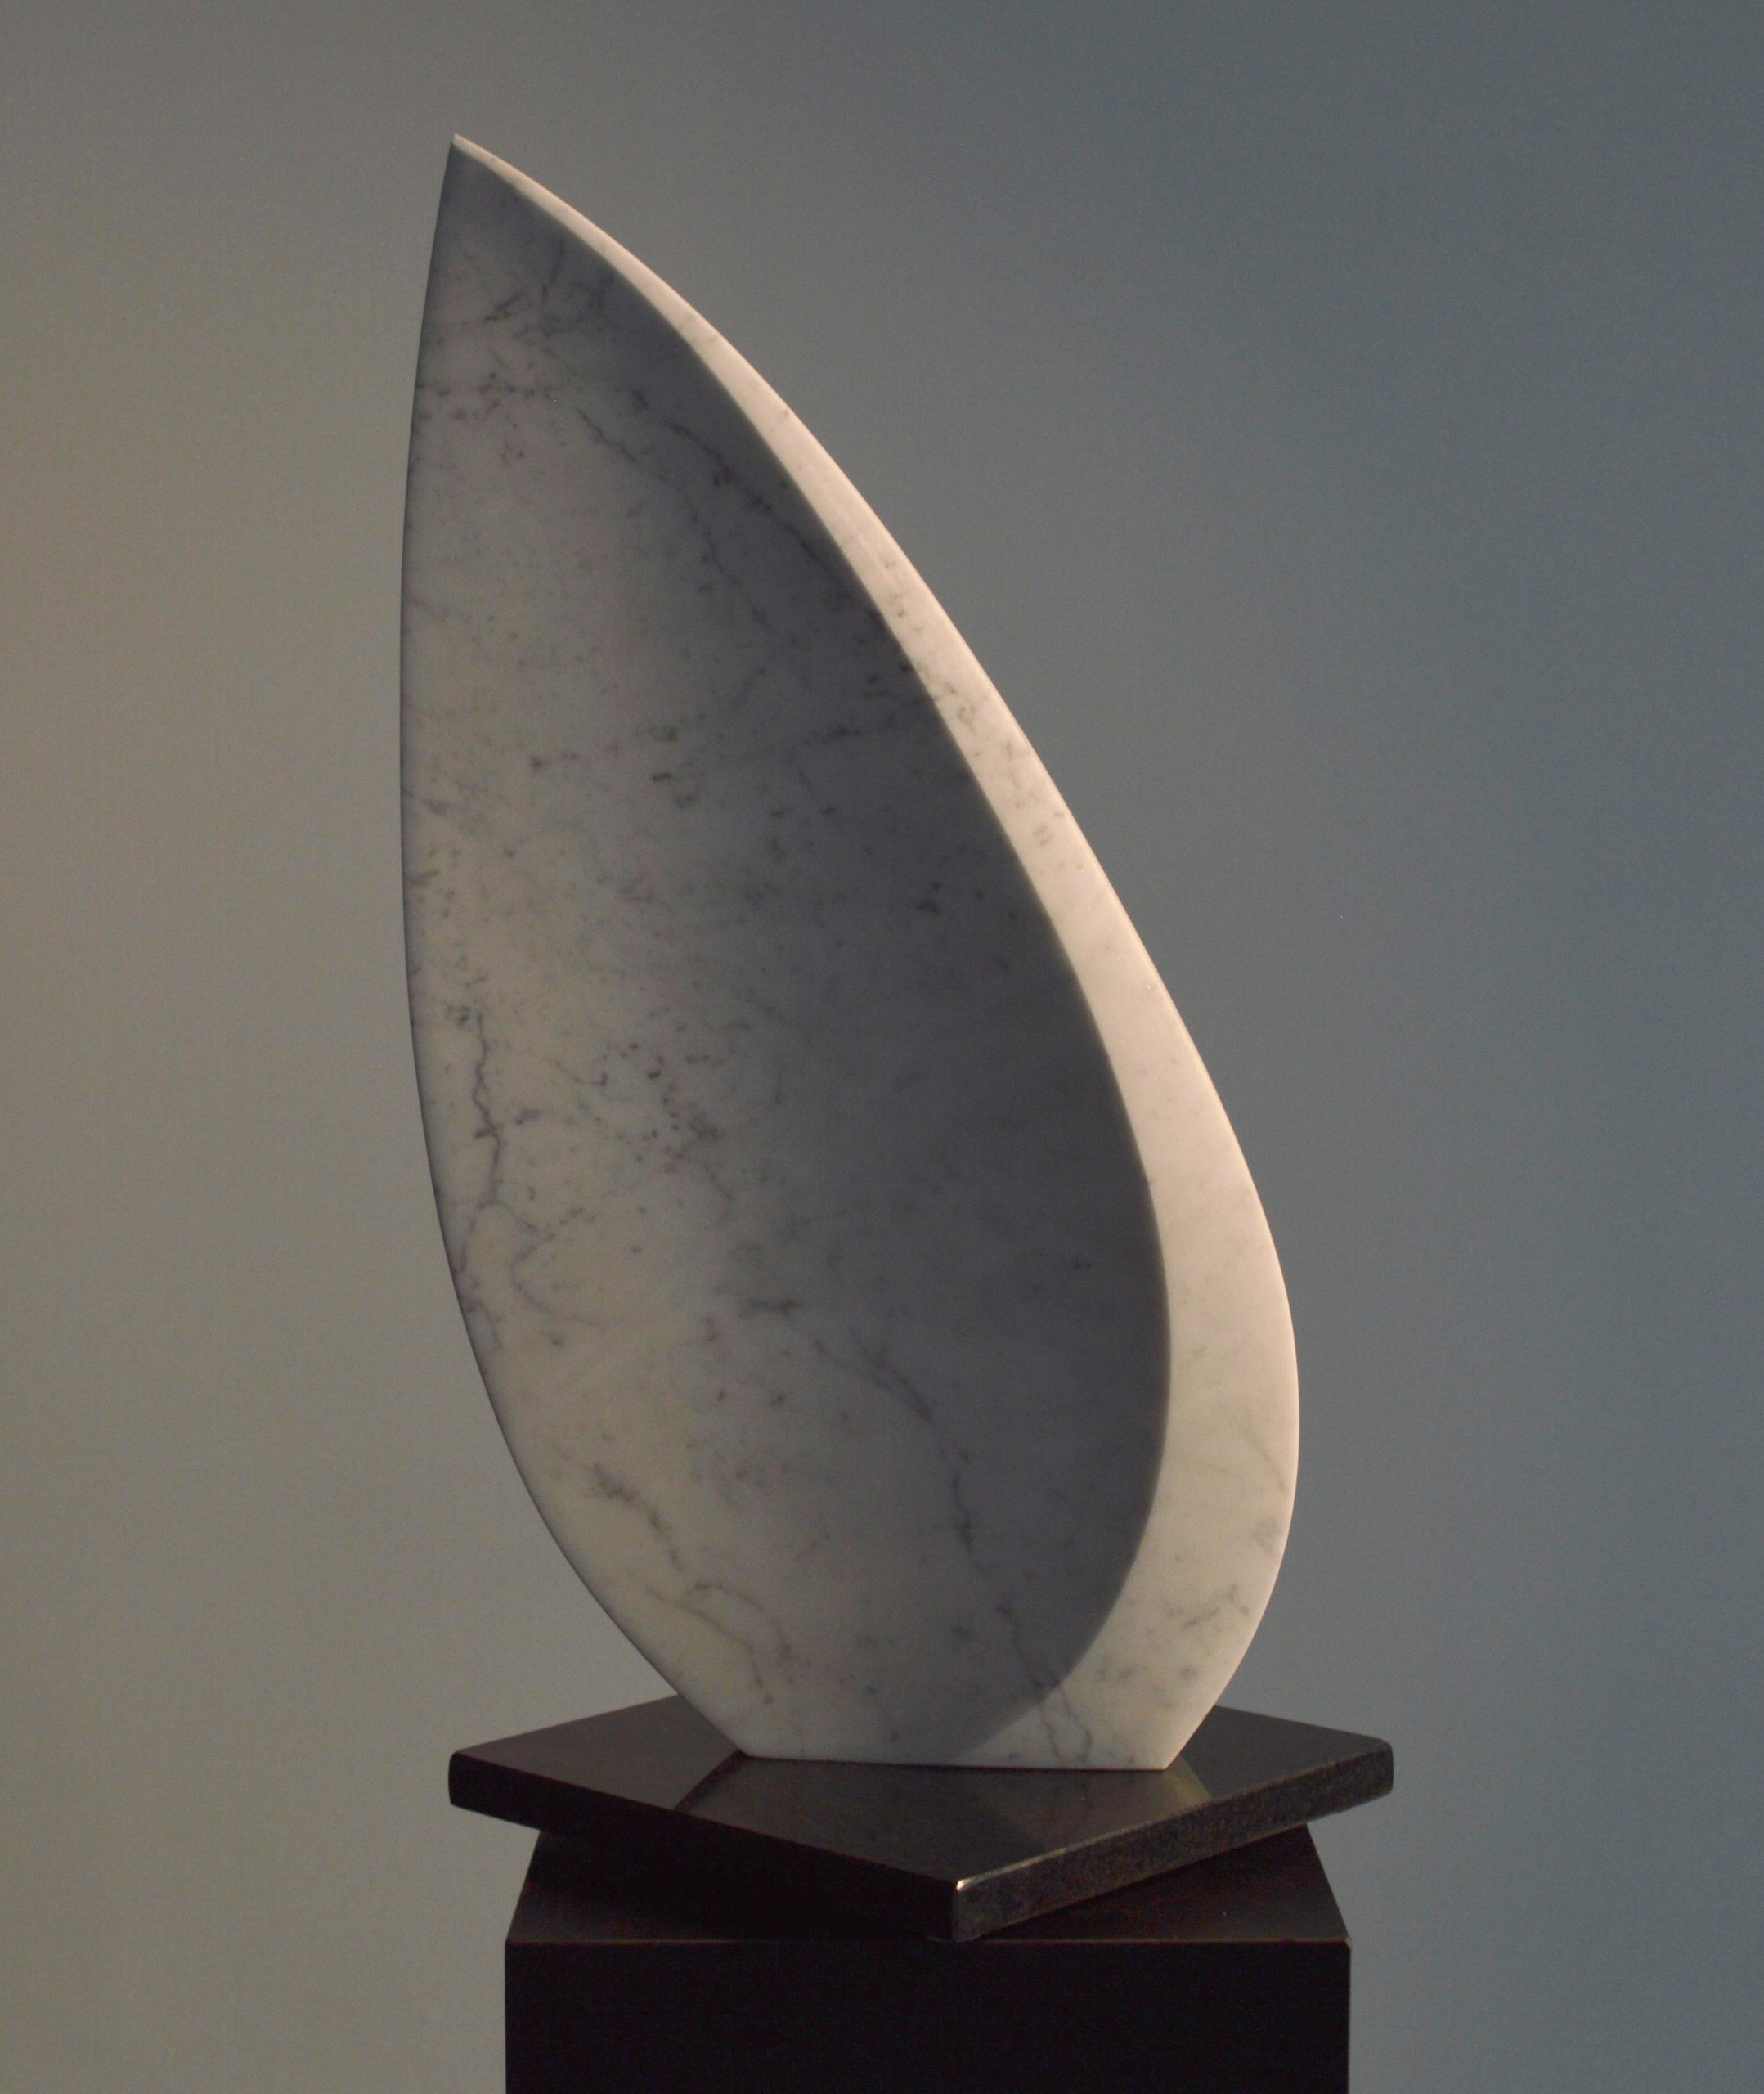 michael binkley sculptor stone sculpture abstract harp marble vancouver canada